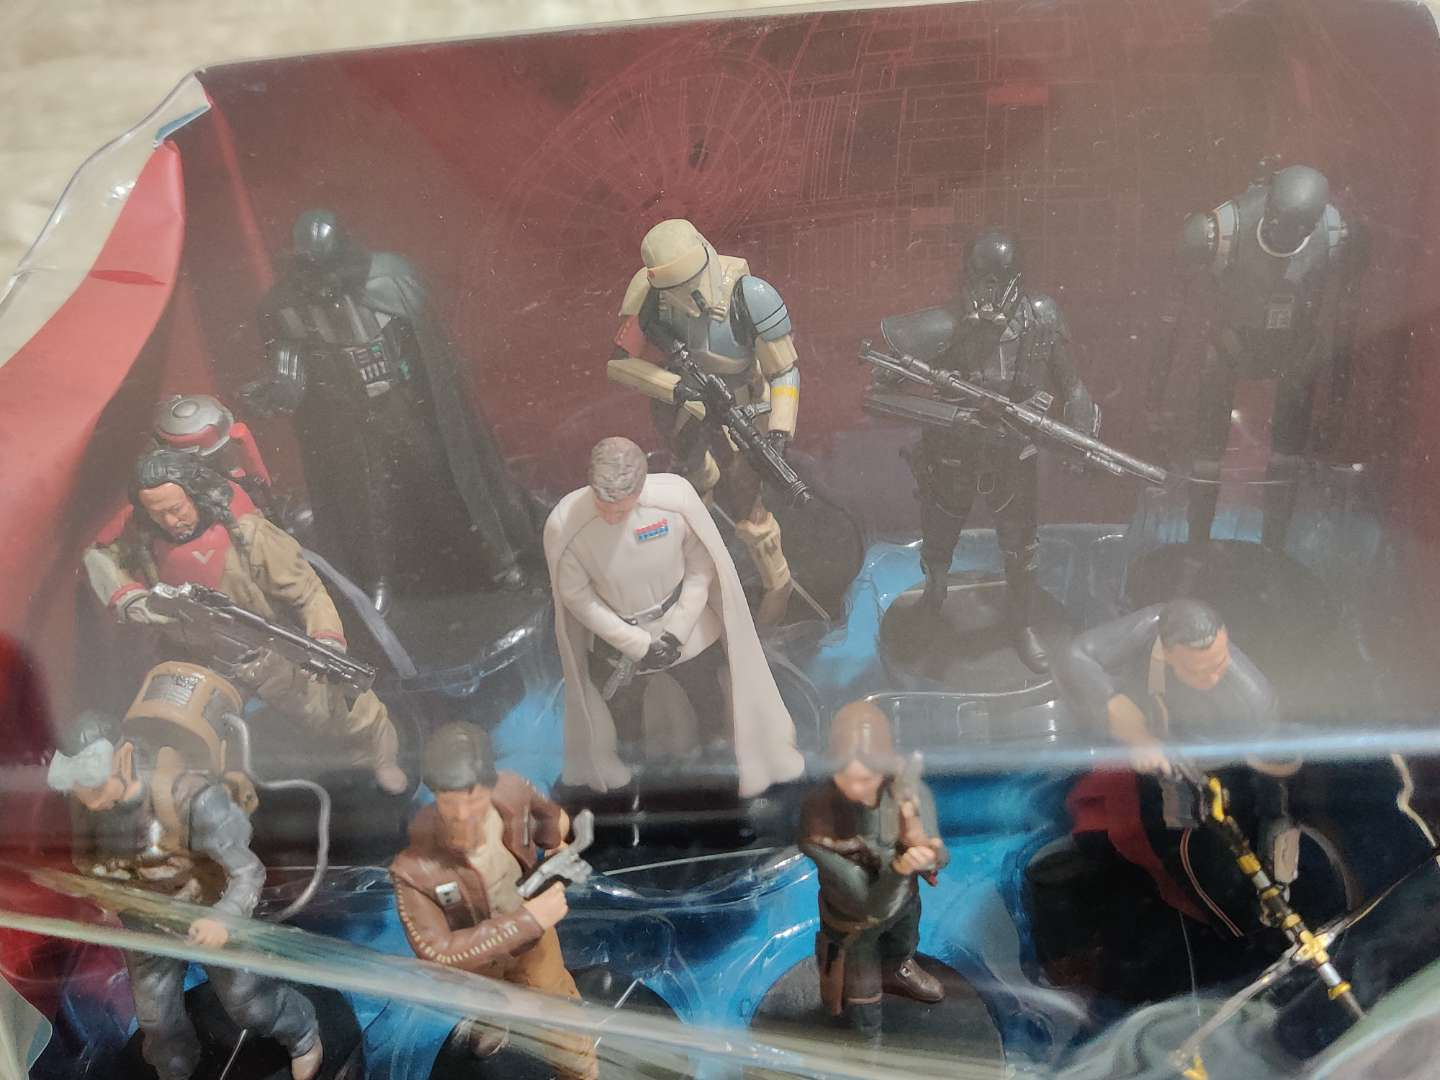 86 Star Wars Rogue One deluxe figure set in the box